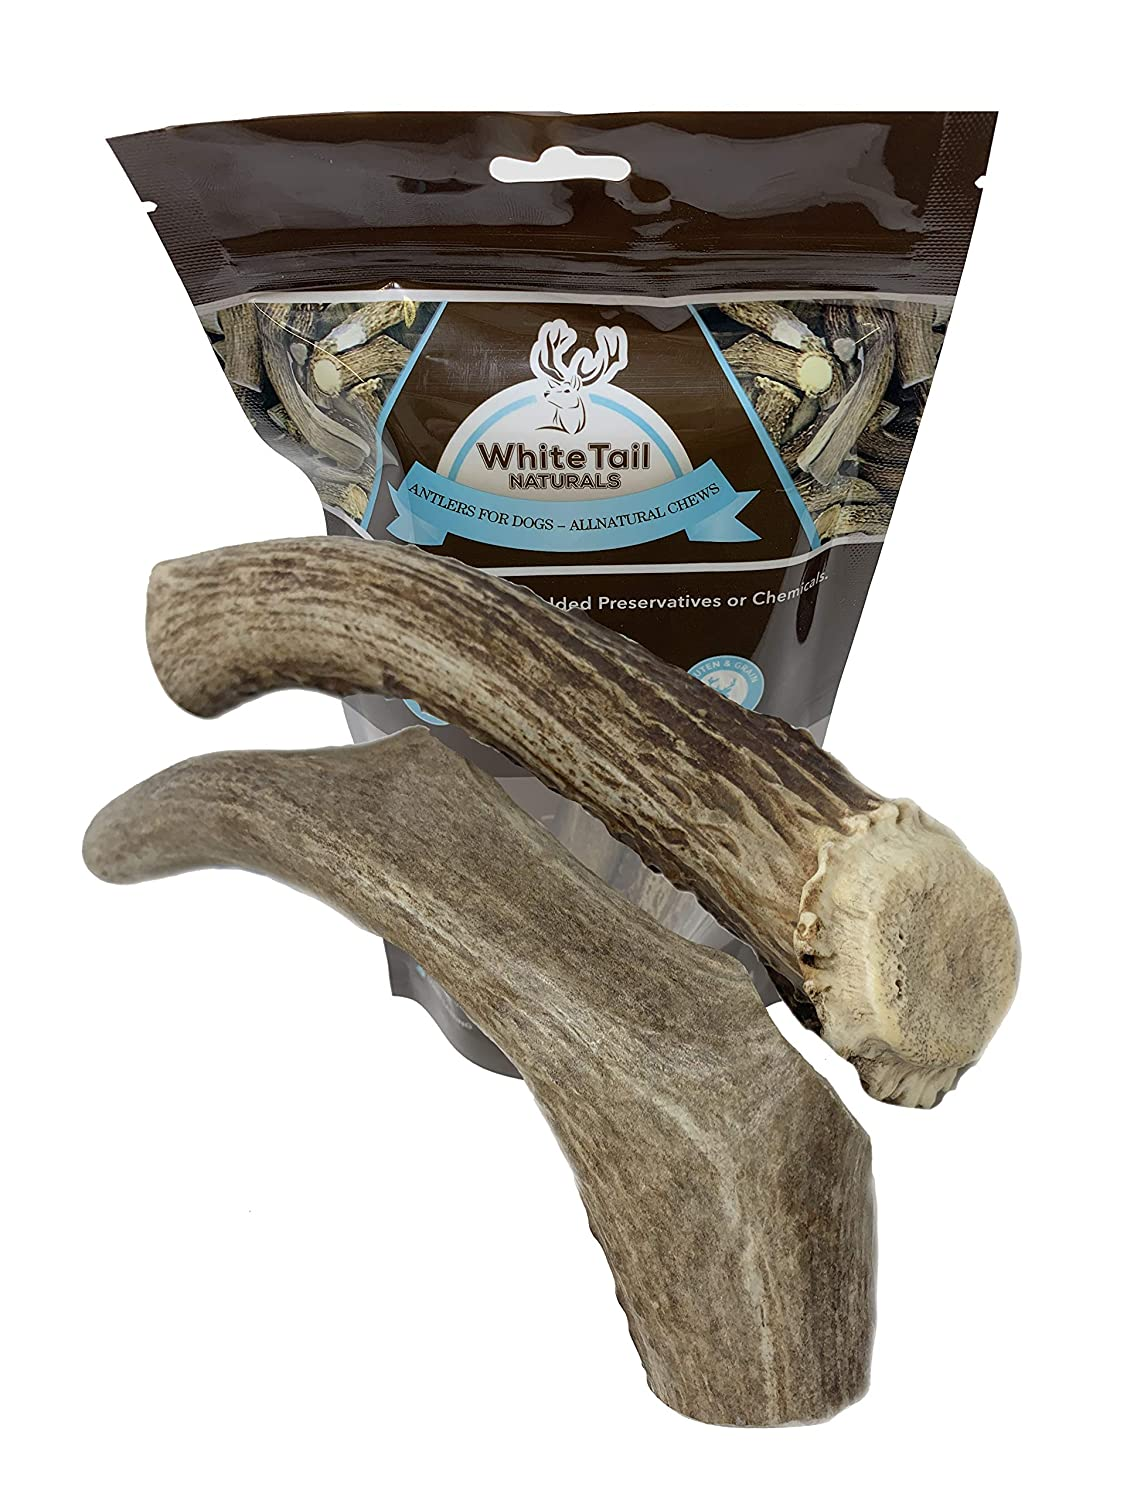 Buck Bone Organics Elk Antlers For Dogs, Premium Grade A – Naturally Sourced From Shed Antler, Large Split Antlers 6-8 In Length, Made in the USA